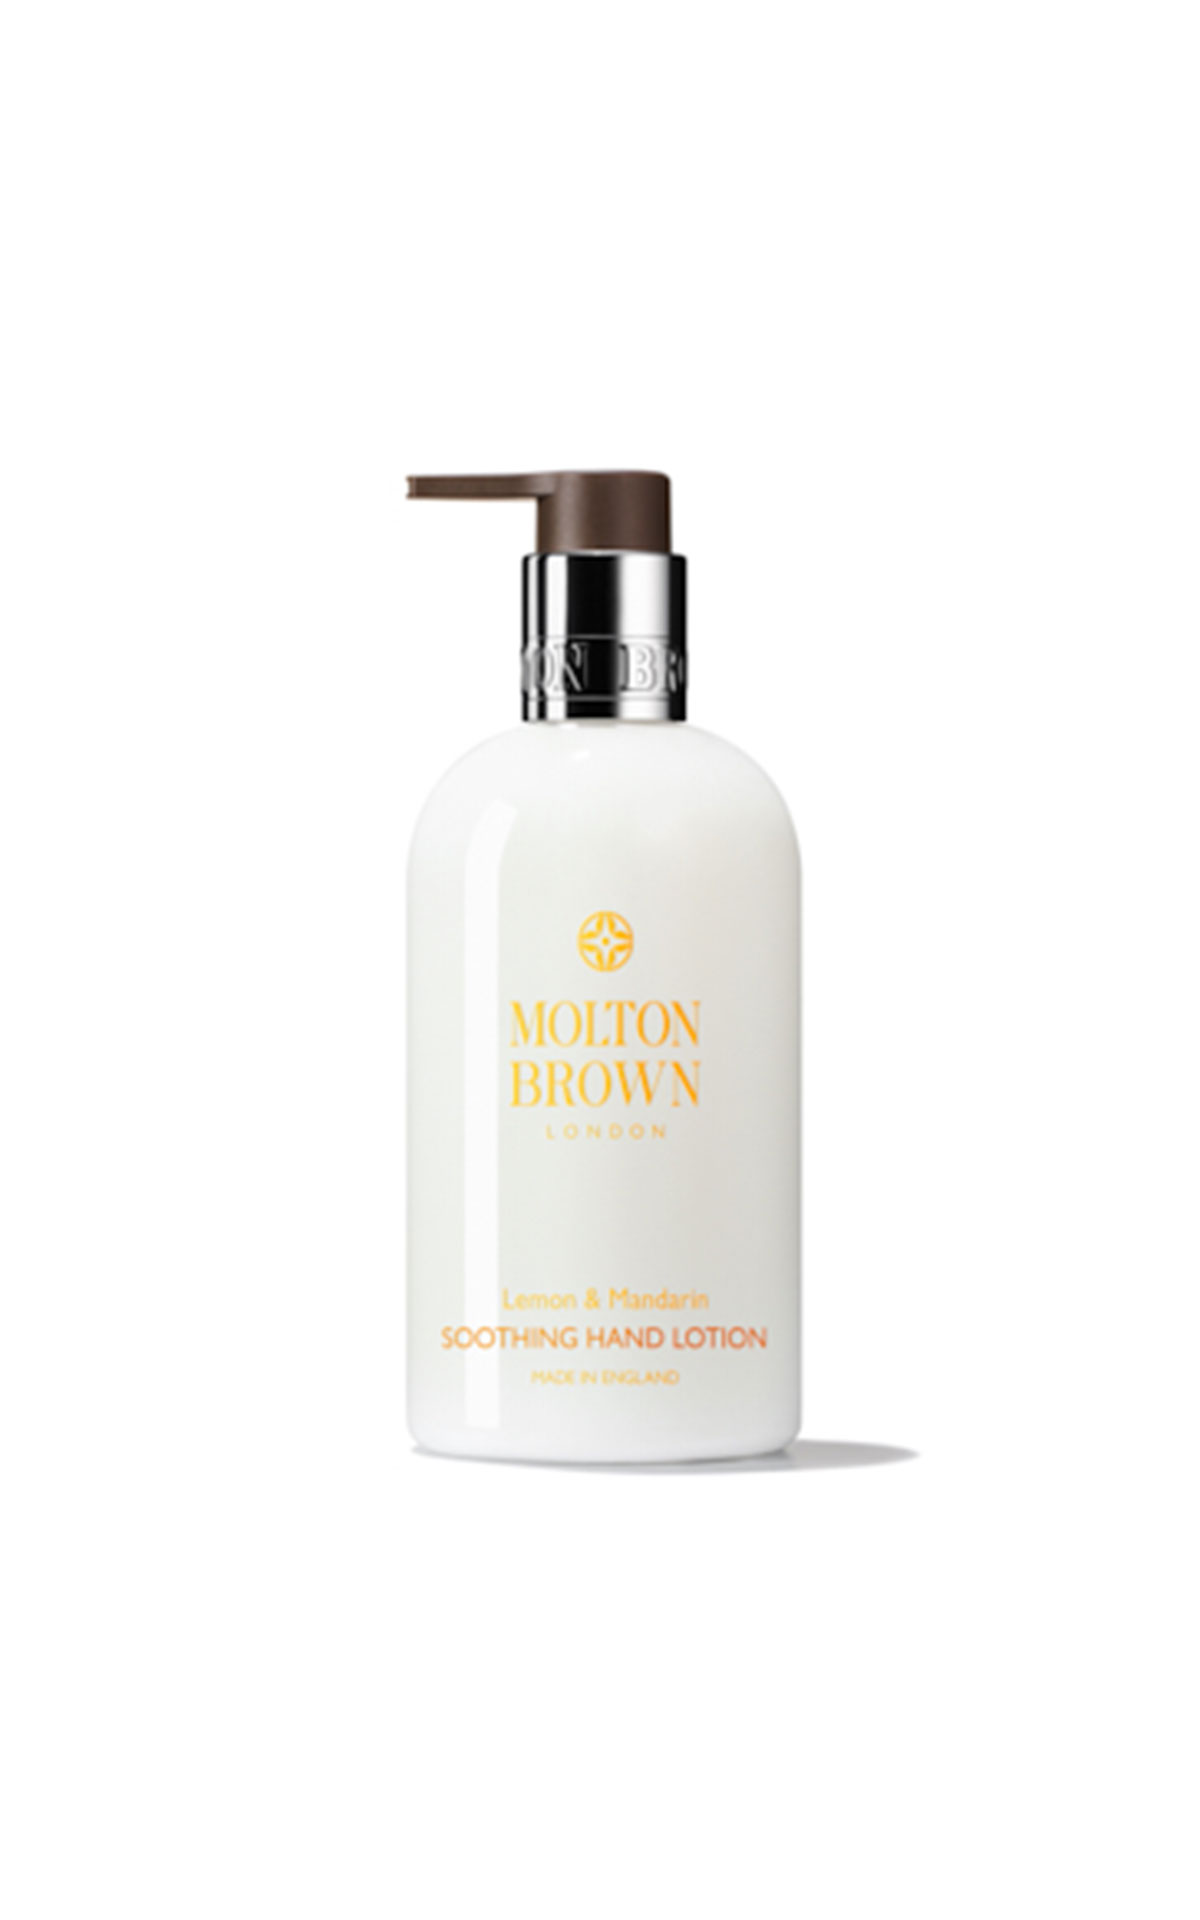 Molton Brown Lemon and mandarin hand lotion 300ml from Bicester Village